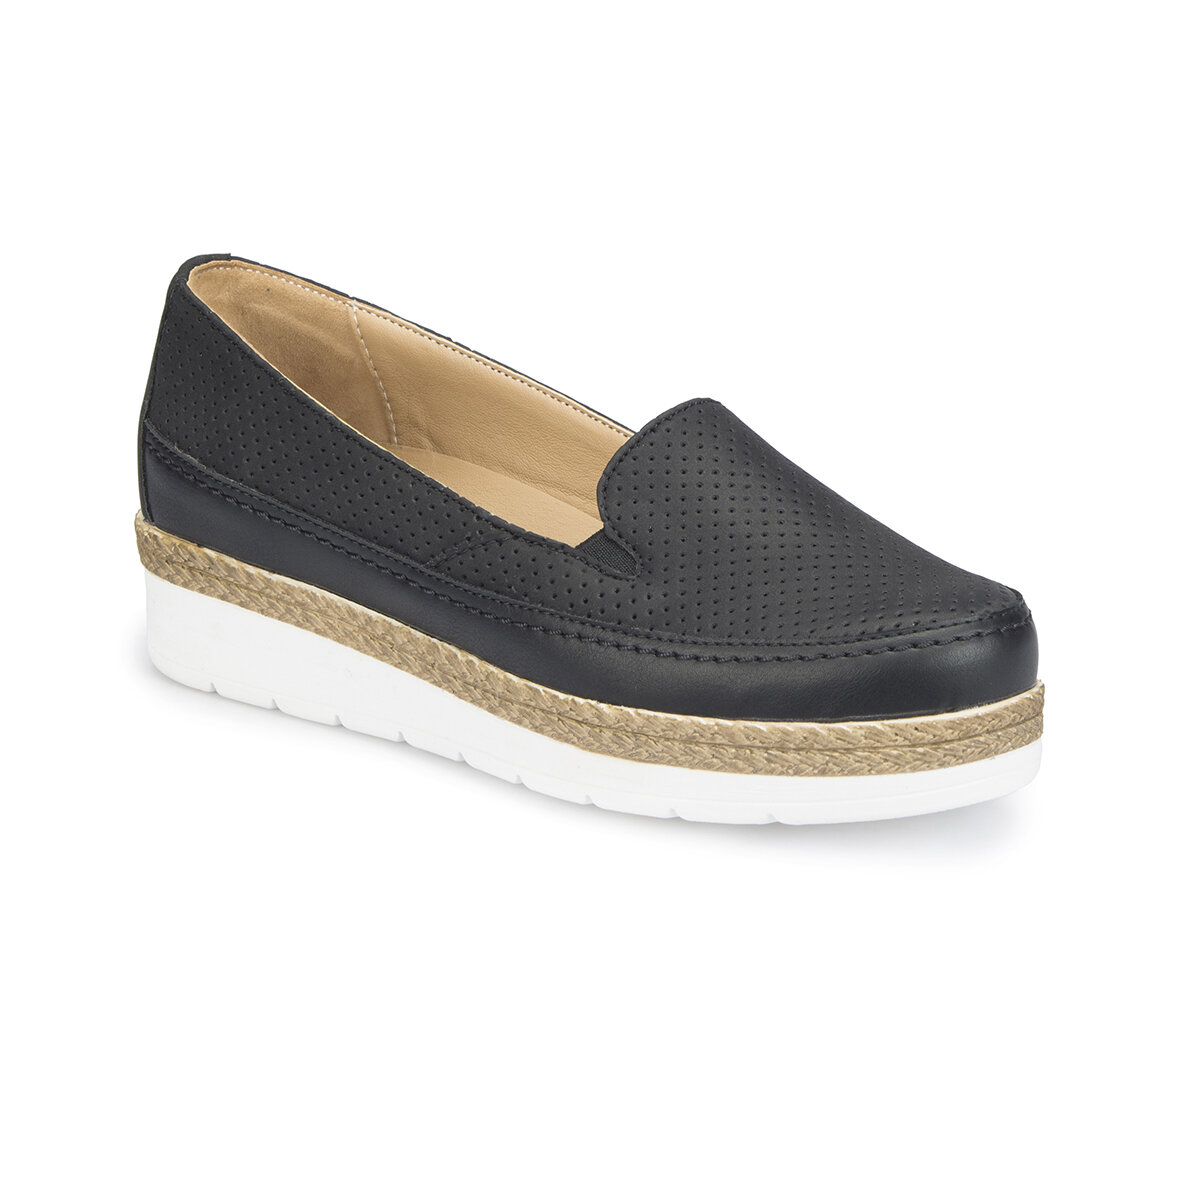 FLO 81.111292.Z Black Women Basic Comfort Polaris